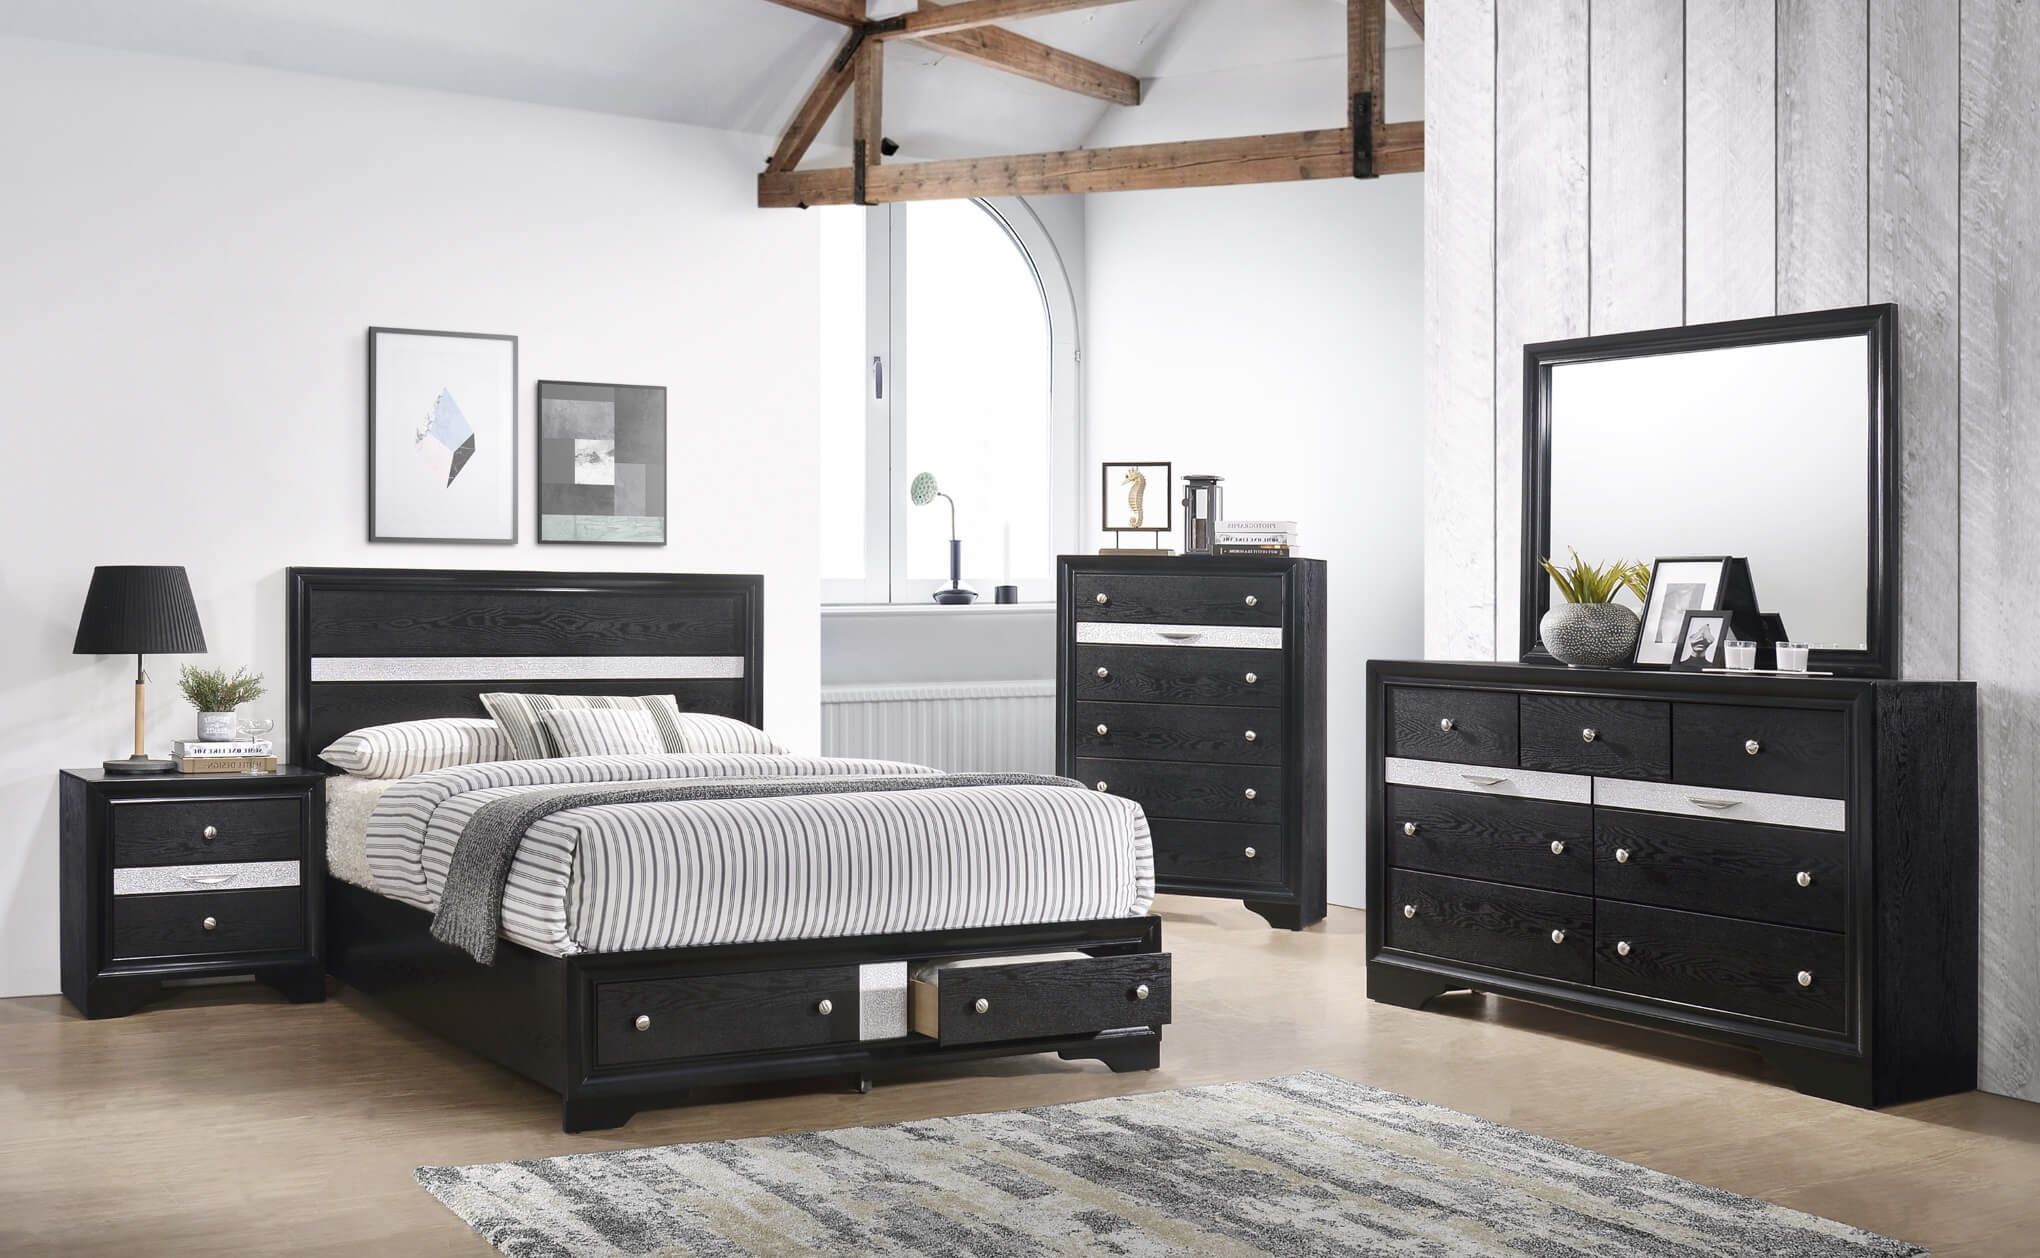 Regata Black Storage Bedroom Set Urban Furniture Outlet